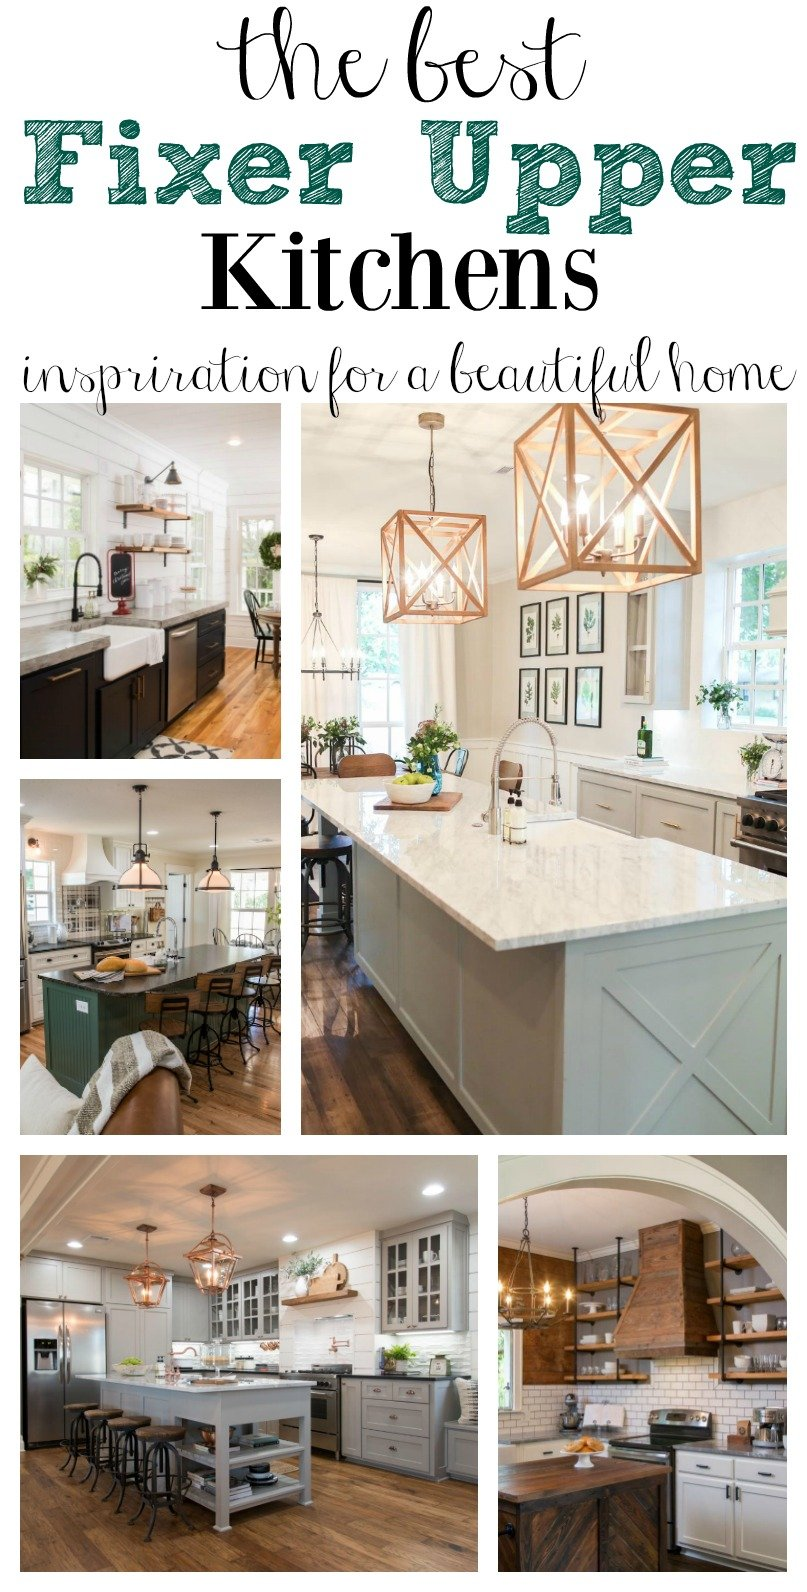 Need kitchen inspiration? Check out Joanna Gaines best kitchens from Fixer Upper. And see the products to help you create the look in your own home.